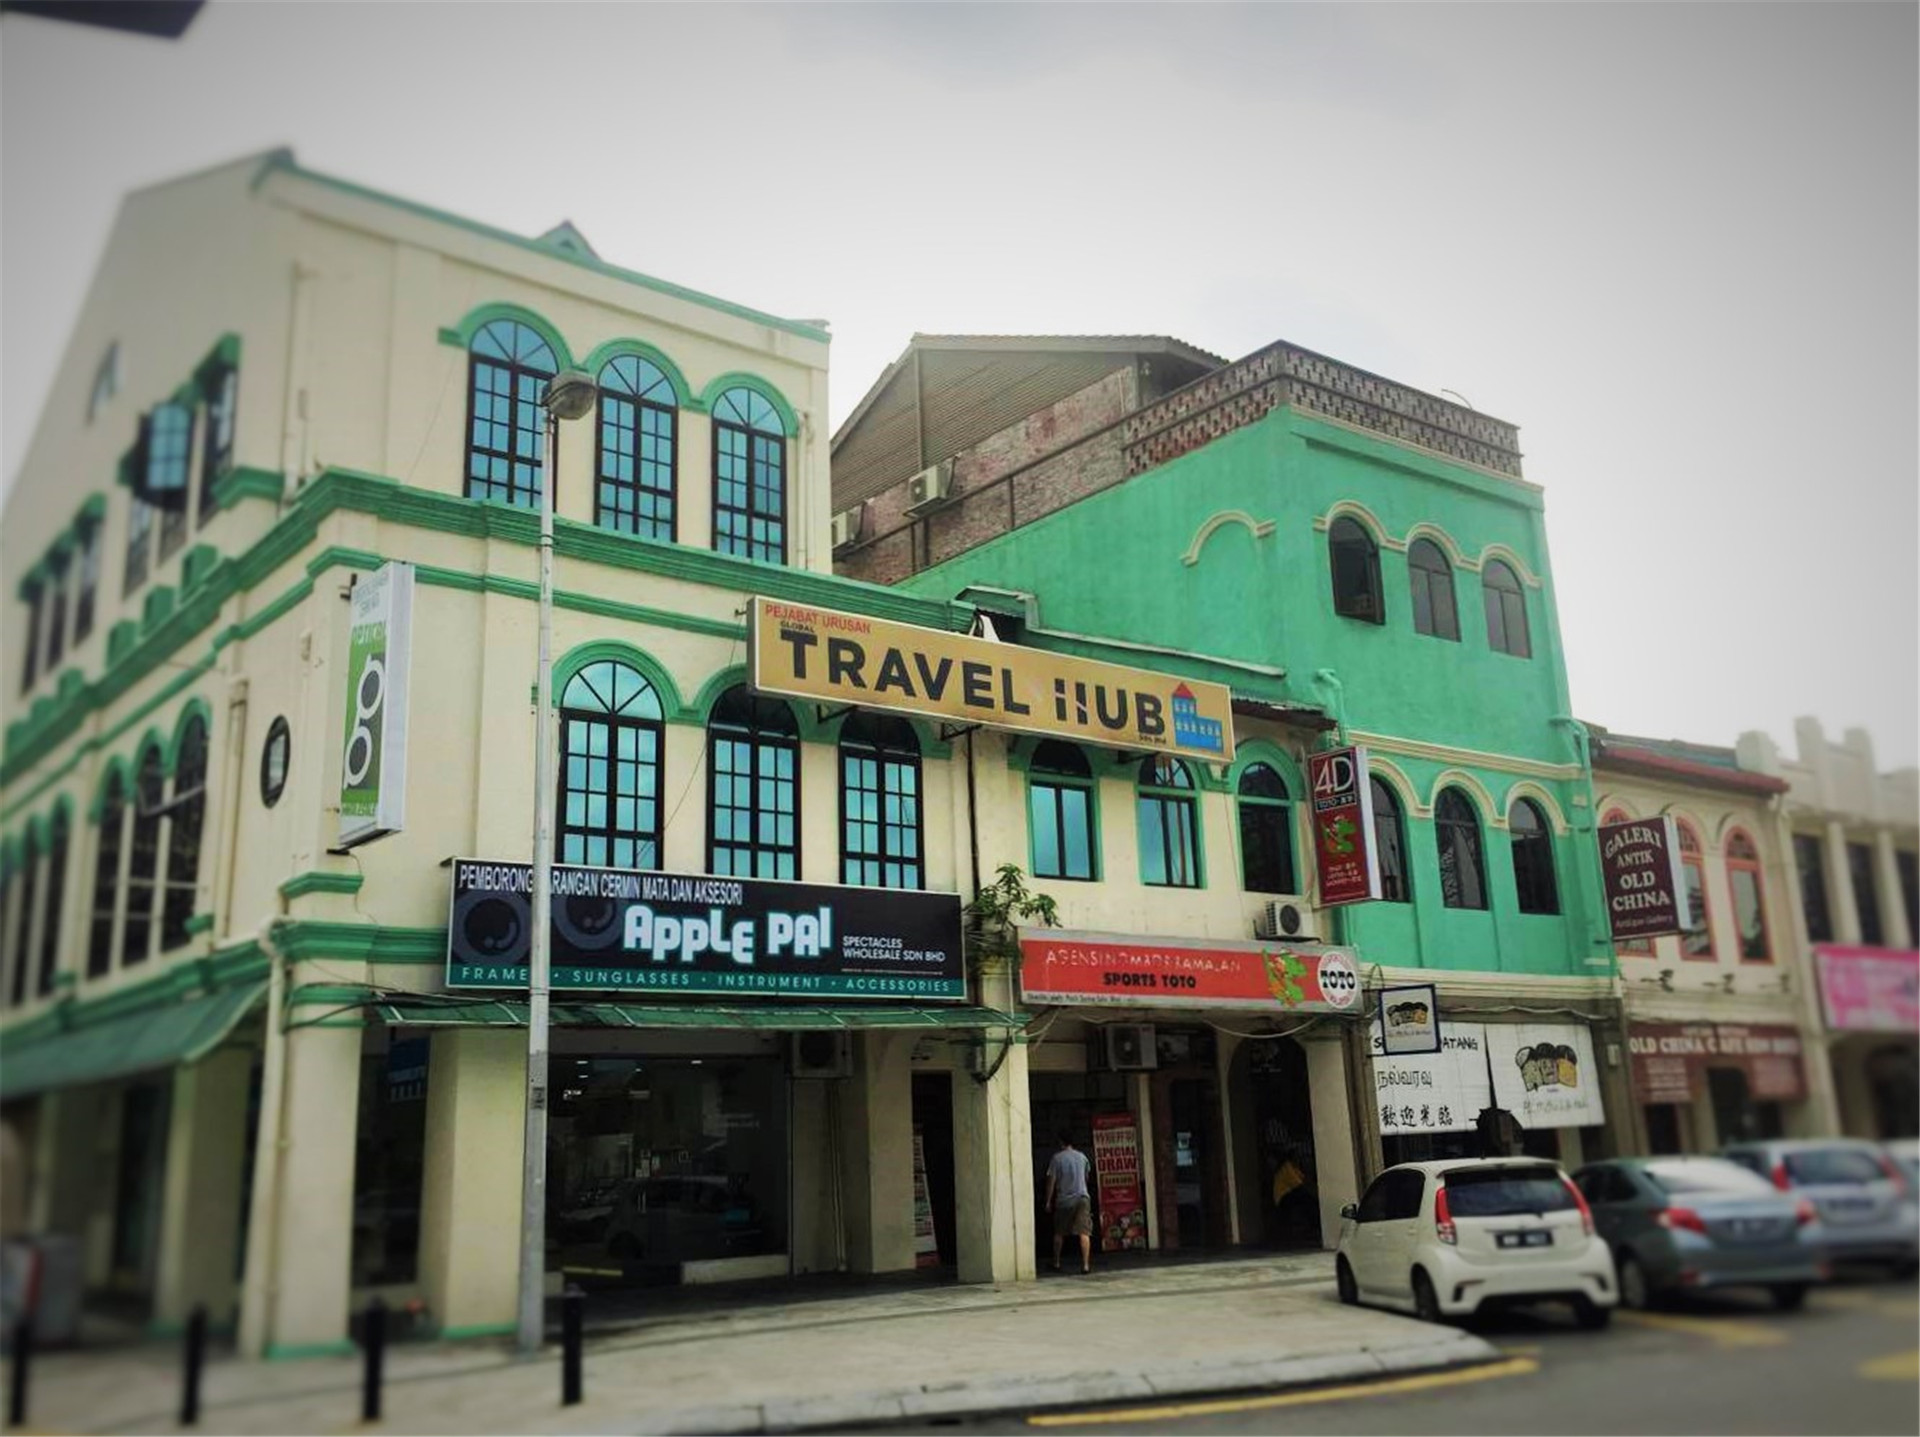 HOSTEL - Travelhub Highstreet